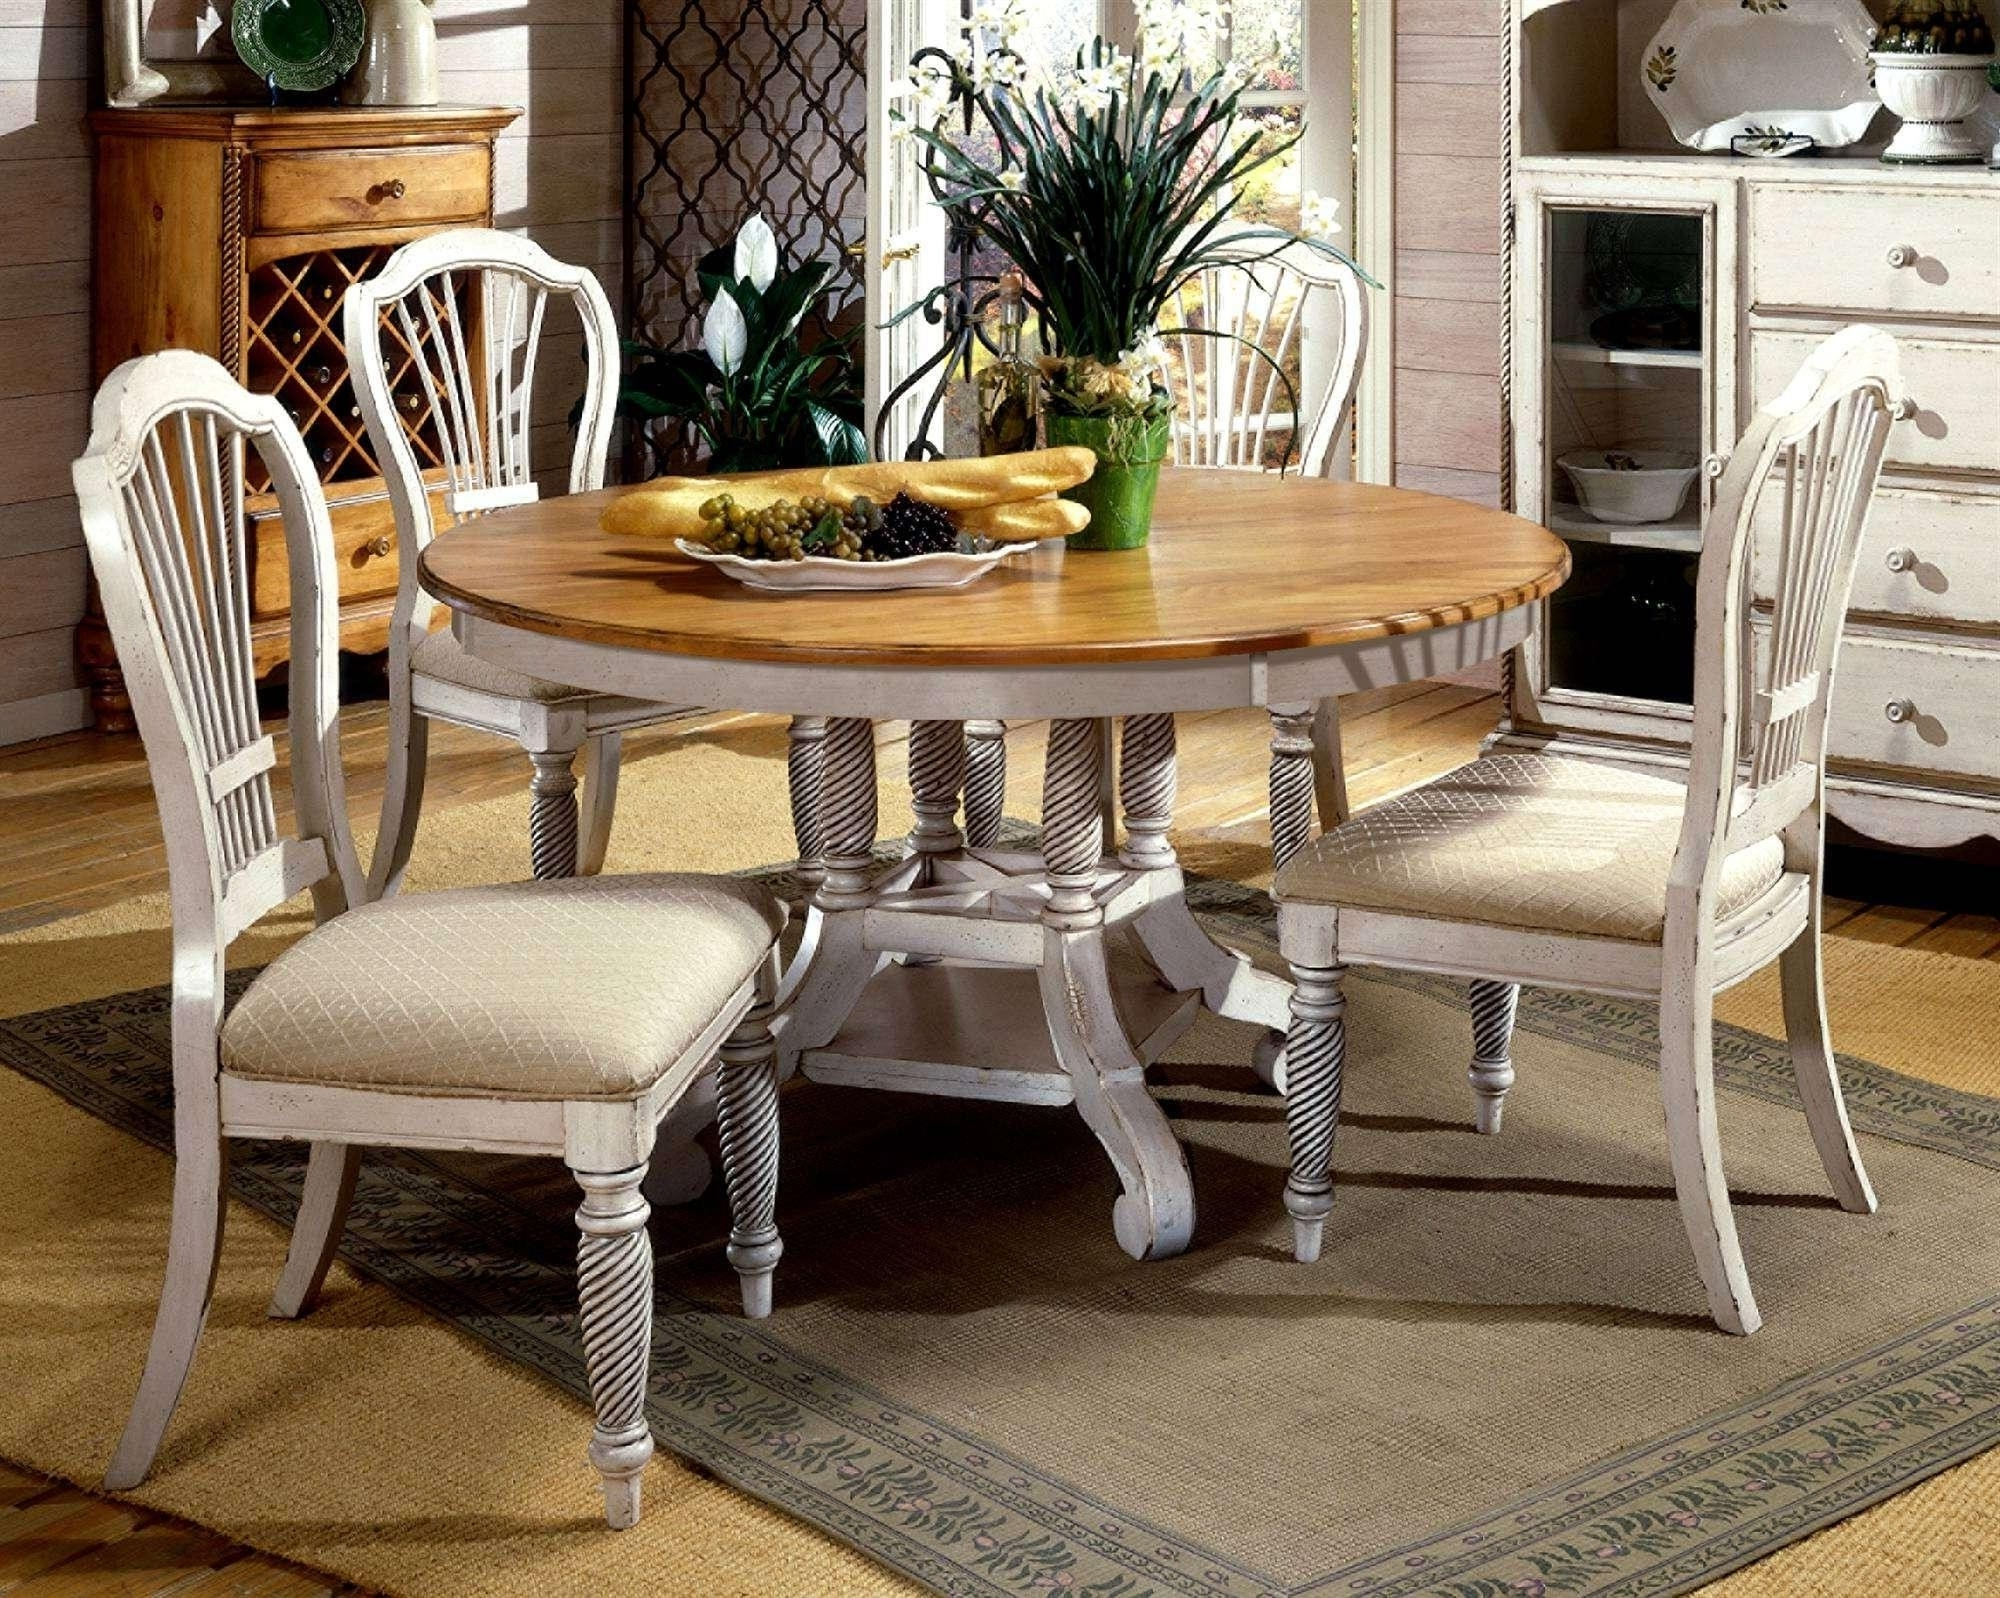 30 Lovely 6 Person Dining Table Size - Welovedandelion regarding Newest Round 6 Person Dining Tables